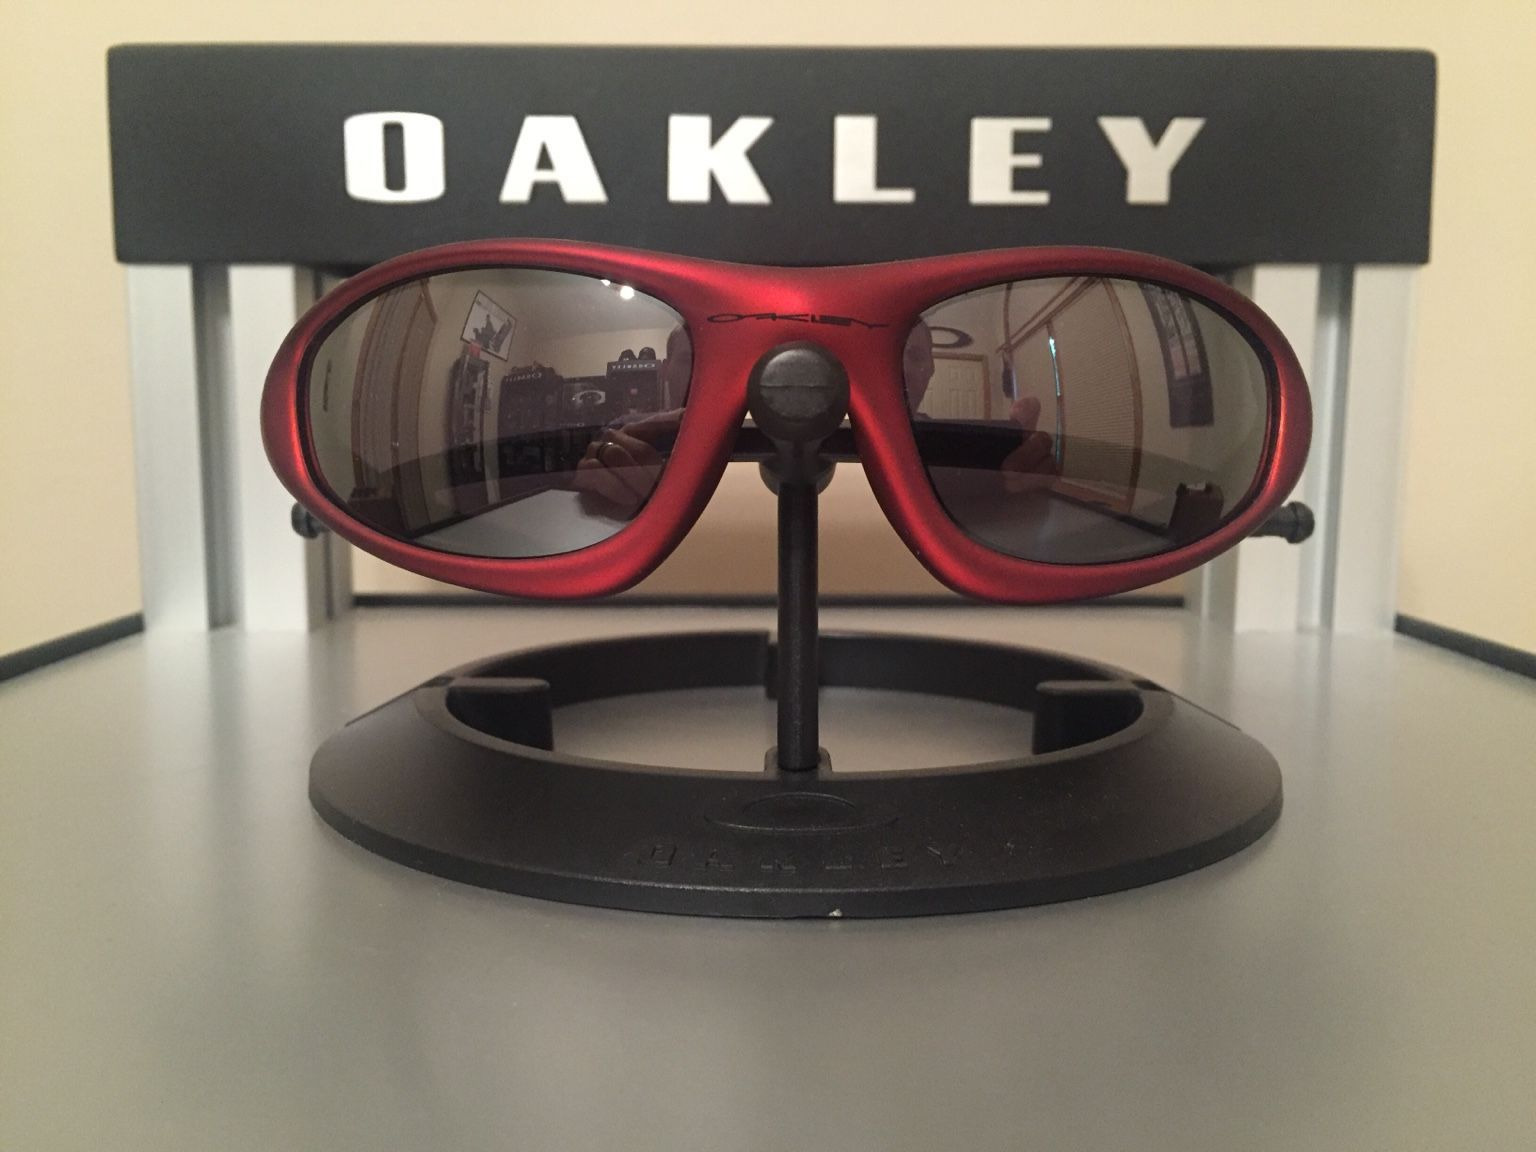 Oakley Straight Jacket....FMJ Red/BI - 66a7db6e9b982e469417f322662f1b6a.jpg